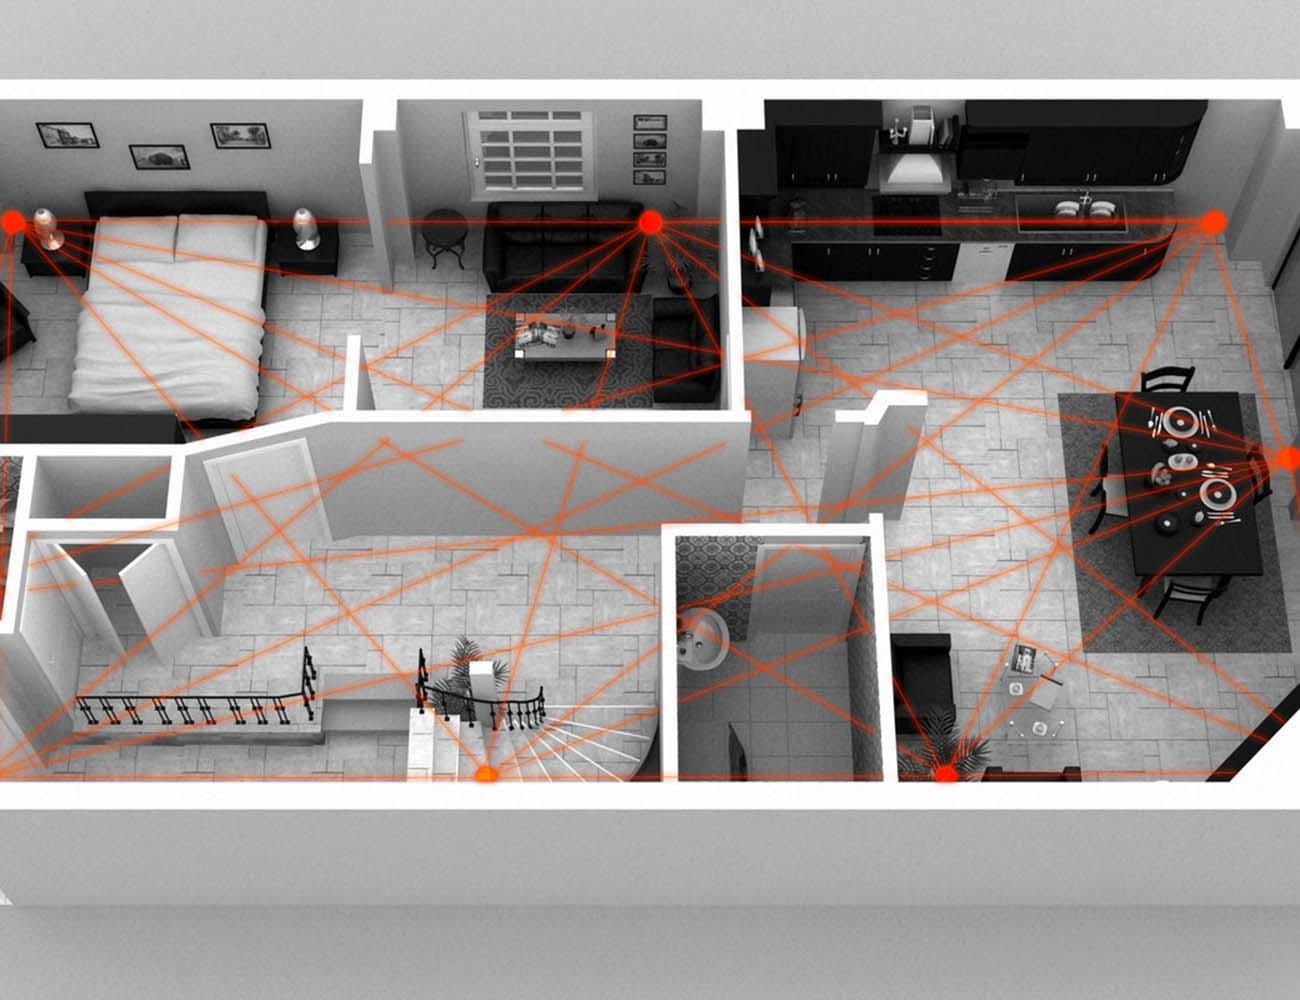 XANDEM HOME – Monitor an Entire House Without Cameras